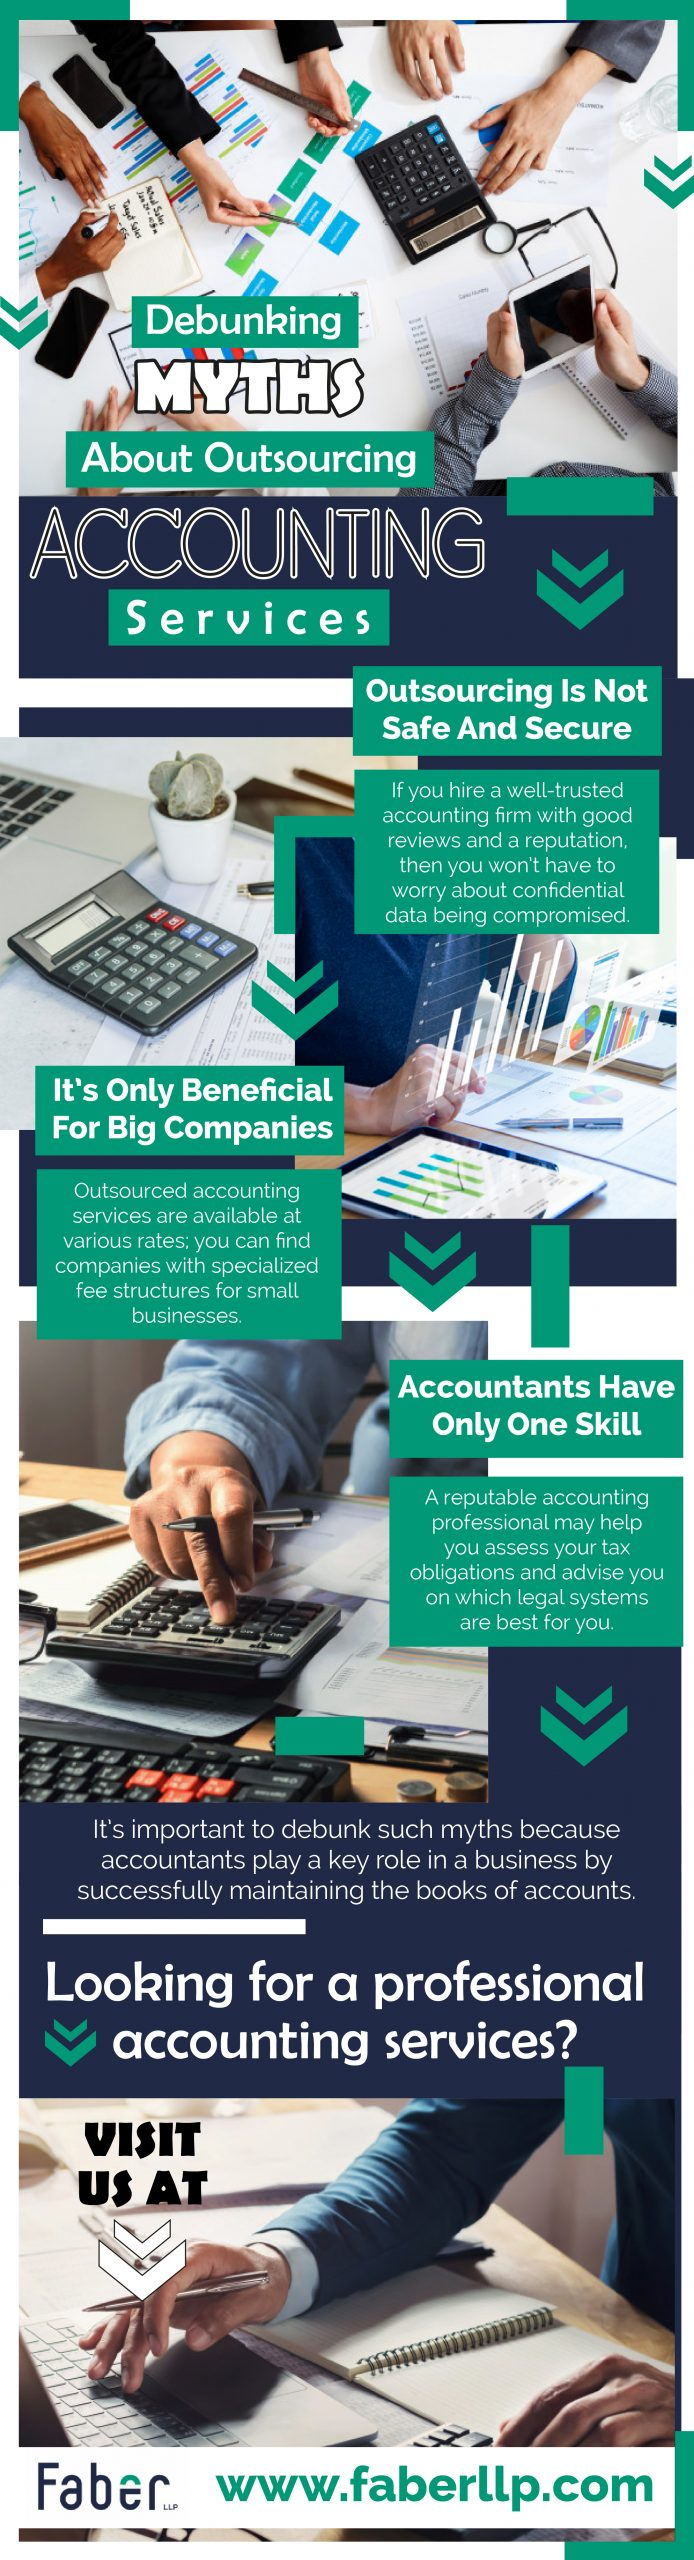 Debunking-Myths-about-Outsourcing-Accounting-Services